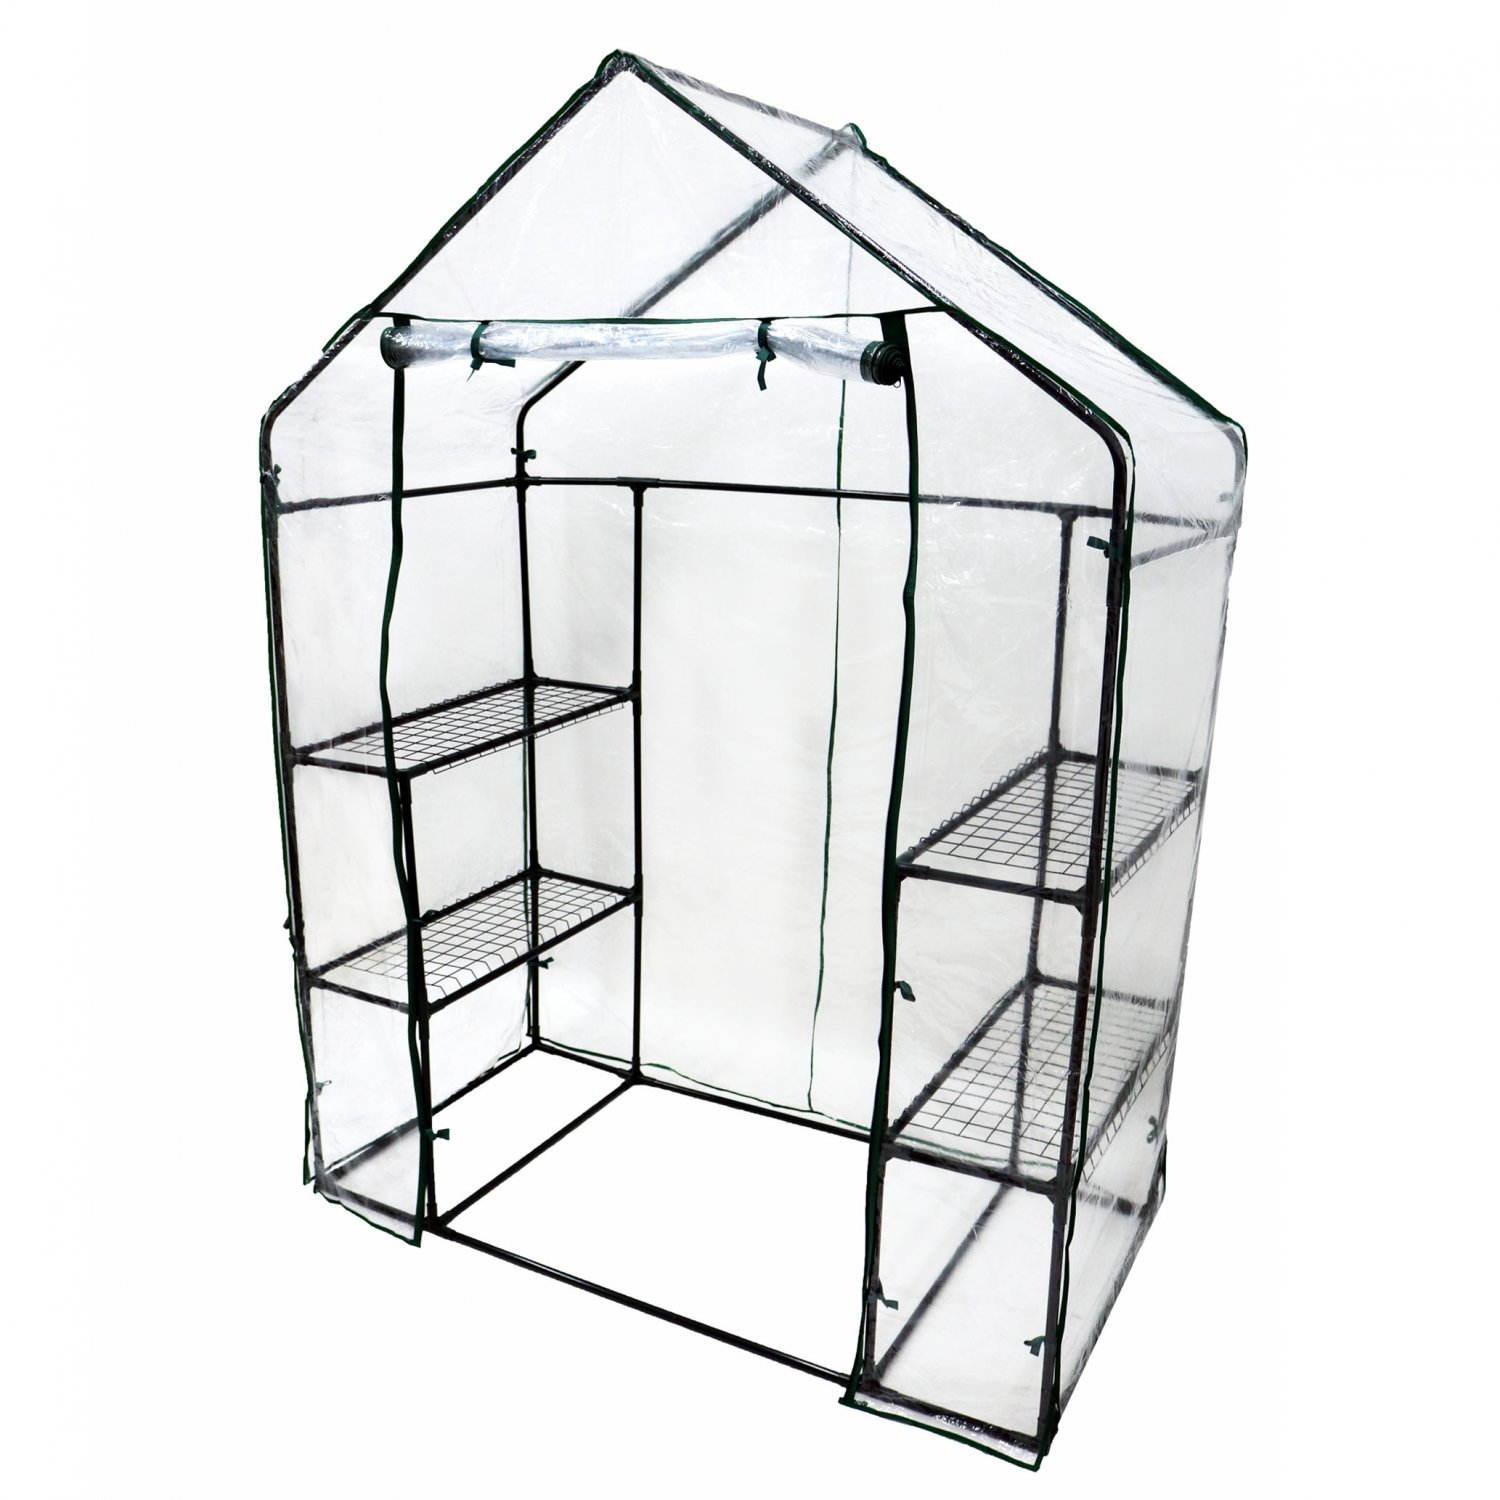 (RL113) 3-Tier 4 Shelf Mini Walk-in Growhouse Garden Greenhouse Our 3-tier Grow House p... - Image 2 of 2